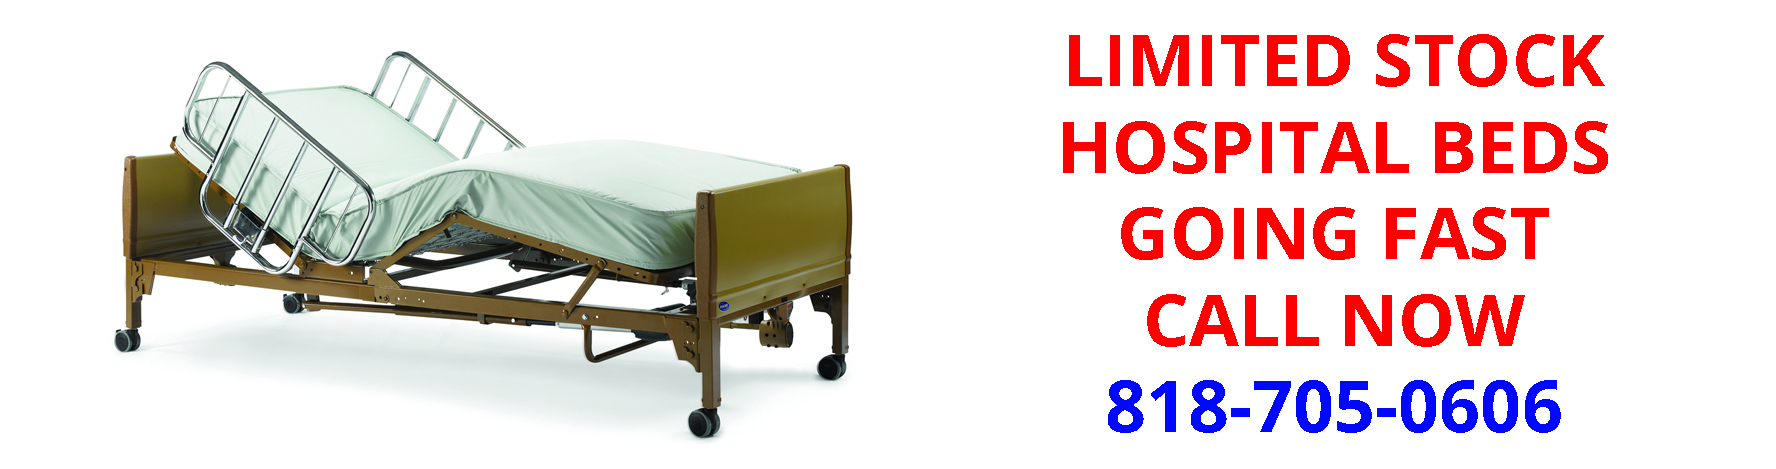 HOSPITAL BED FRONT PAGE DC .jpg